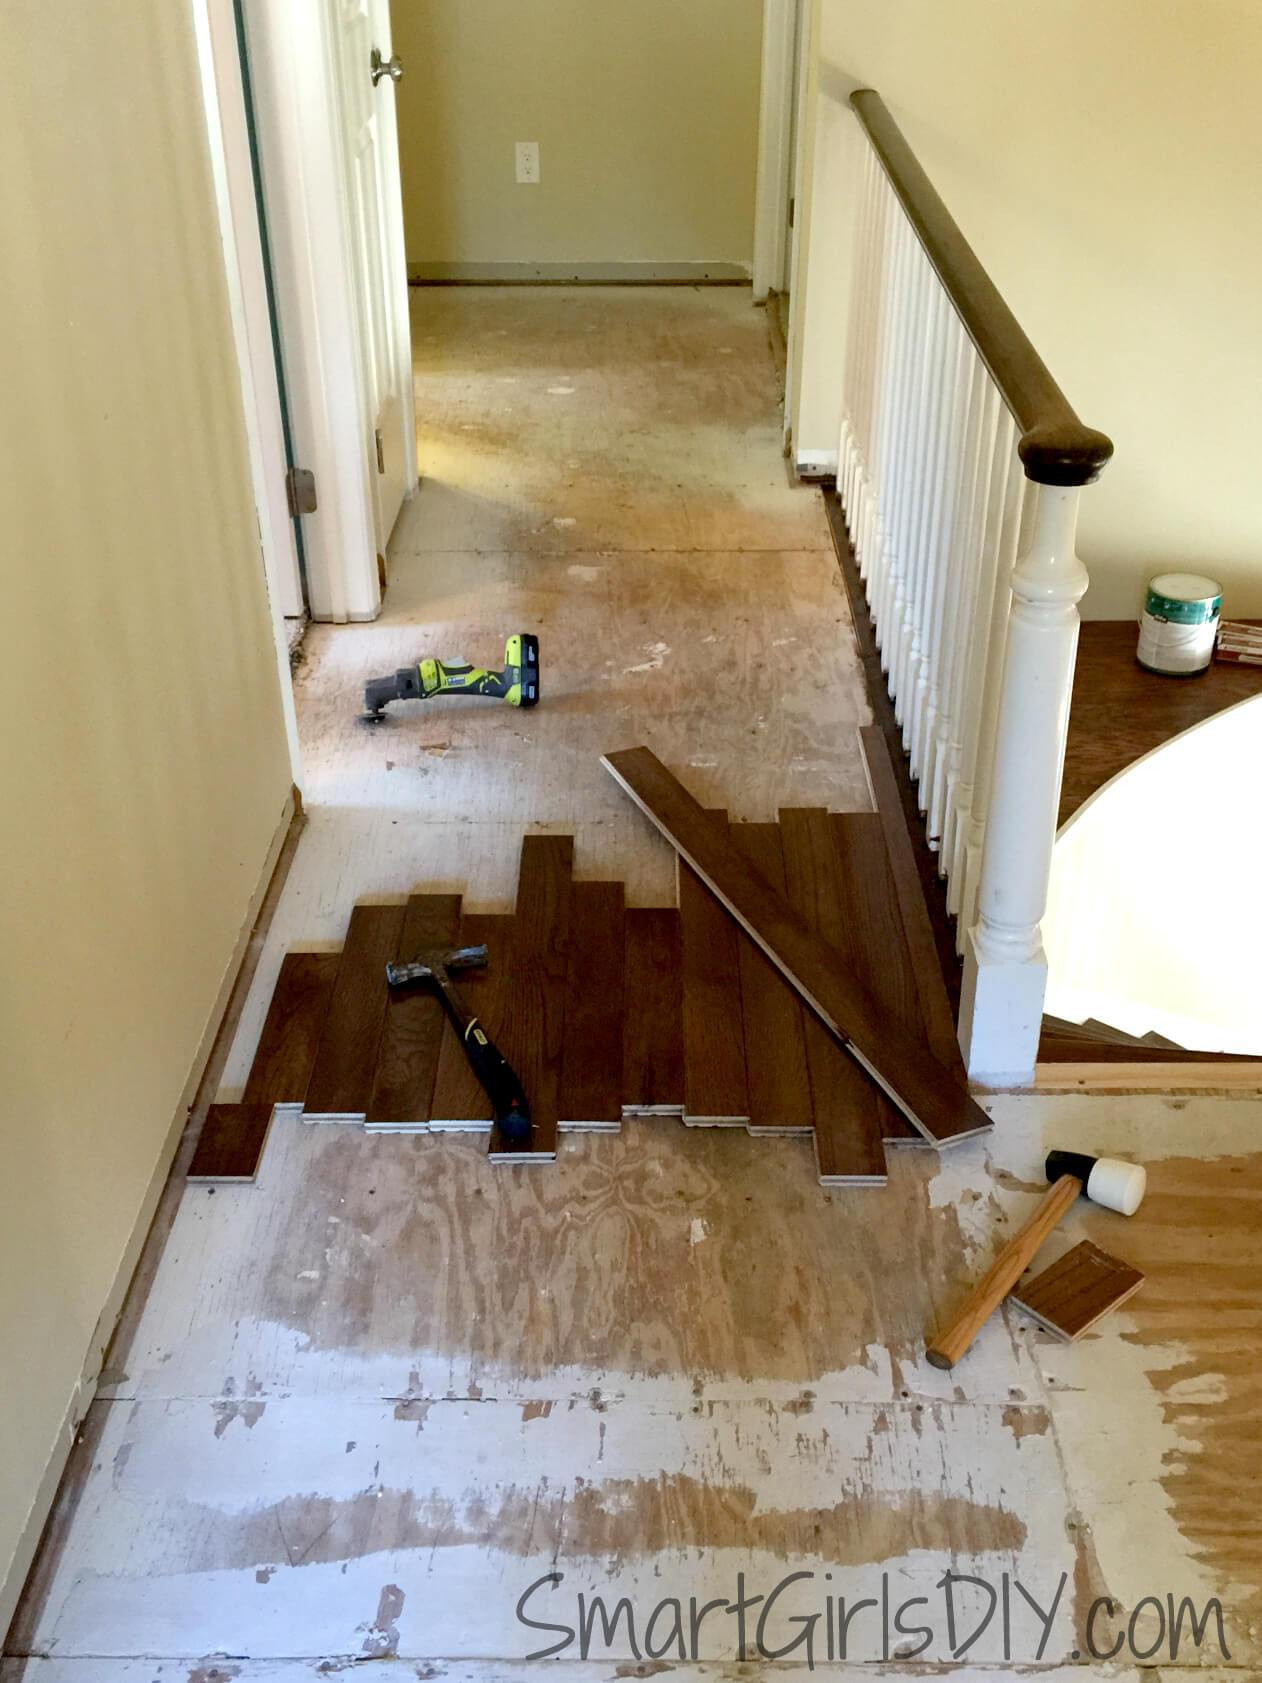 how to install hardwood floors on wood subfloor of upstairs hallway 1 installing hardwood floors with regard to laying out bruce hardwood flooring